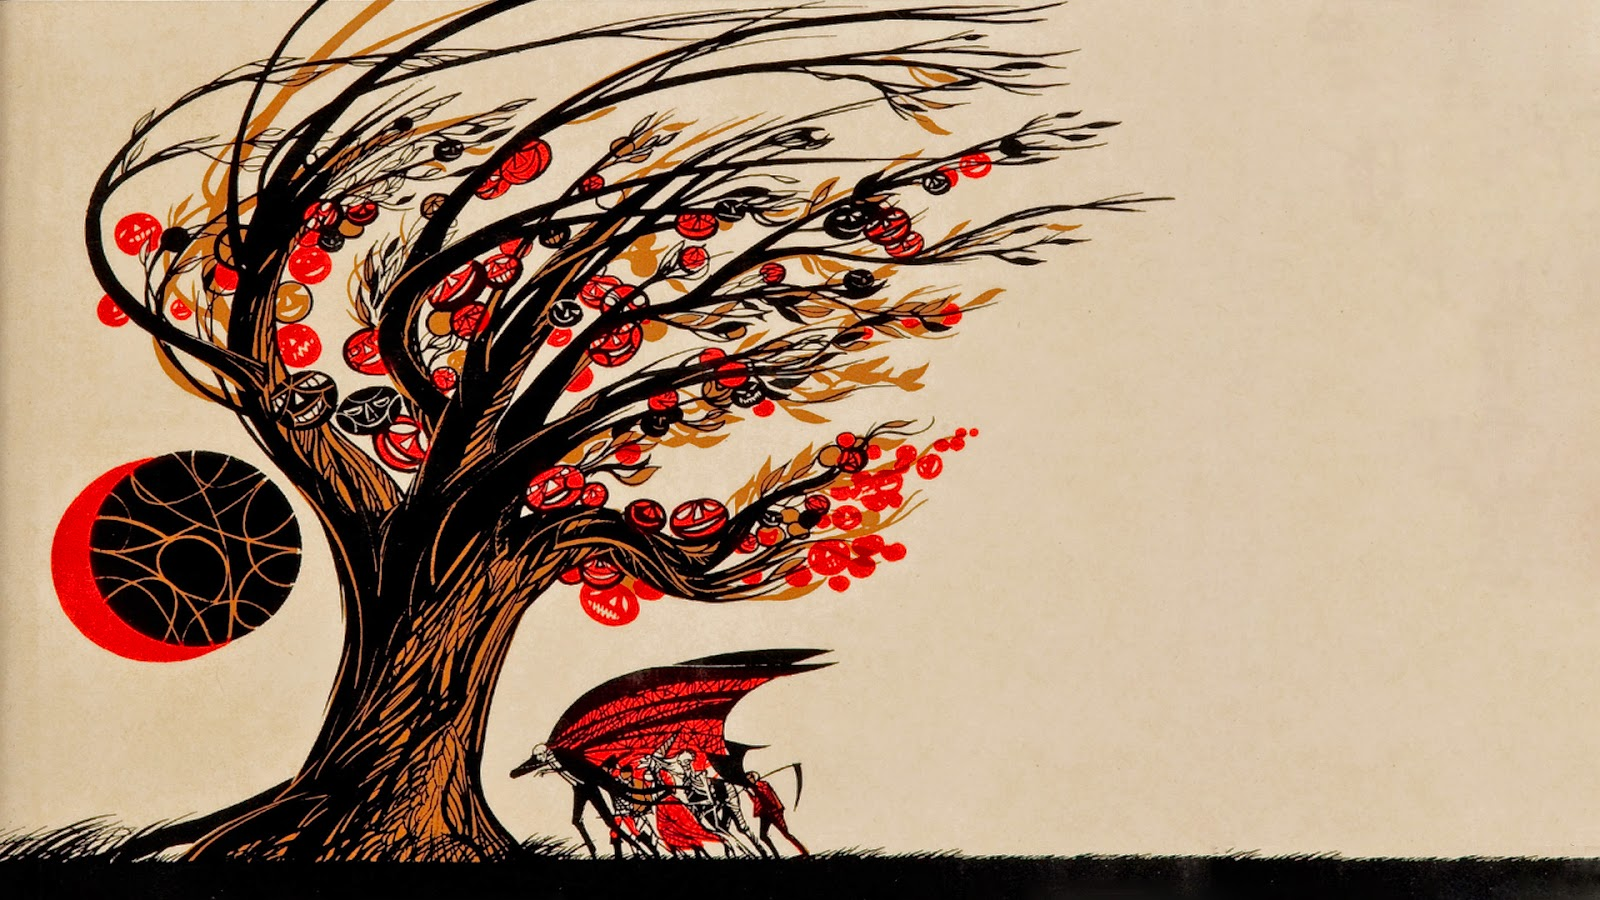 neato coolville: halloween wallpaper: ray bradbury's the halloween tree